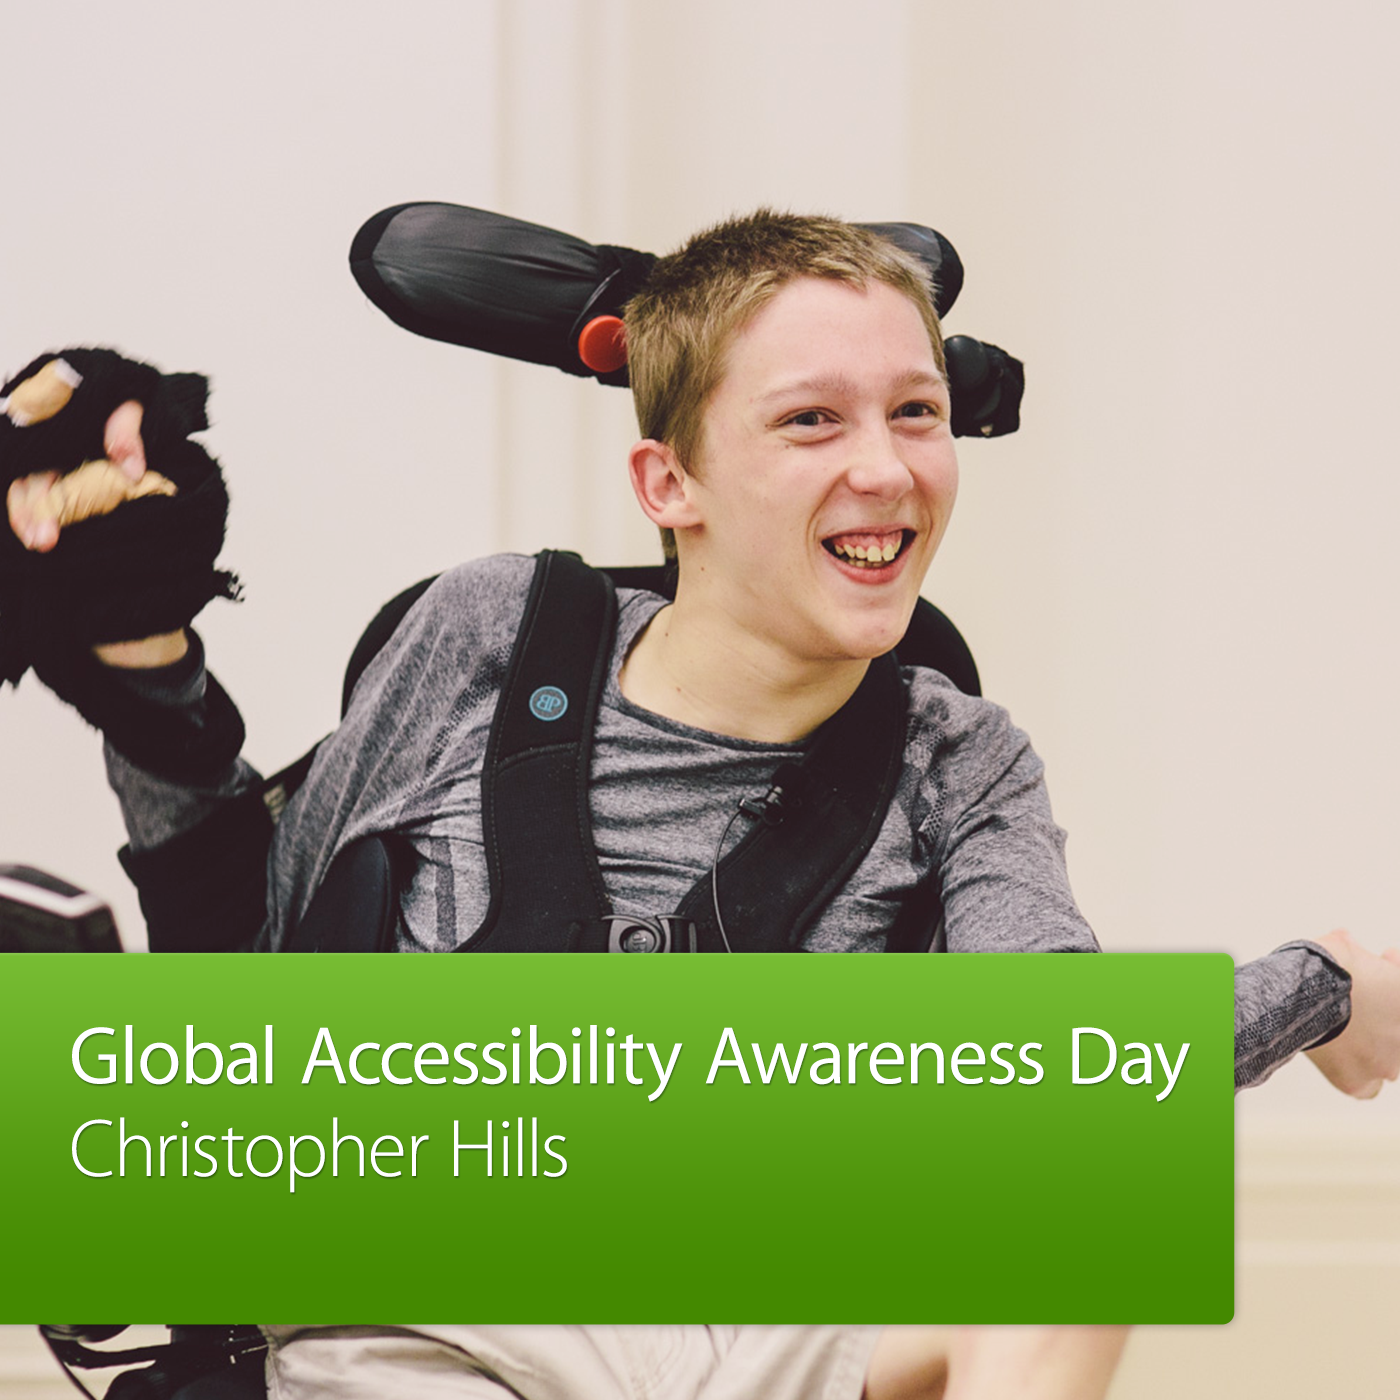 Global Accessibility Awareness Day: Christopher Hills